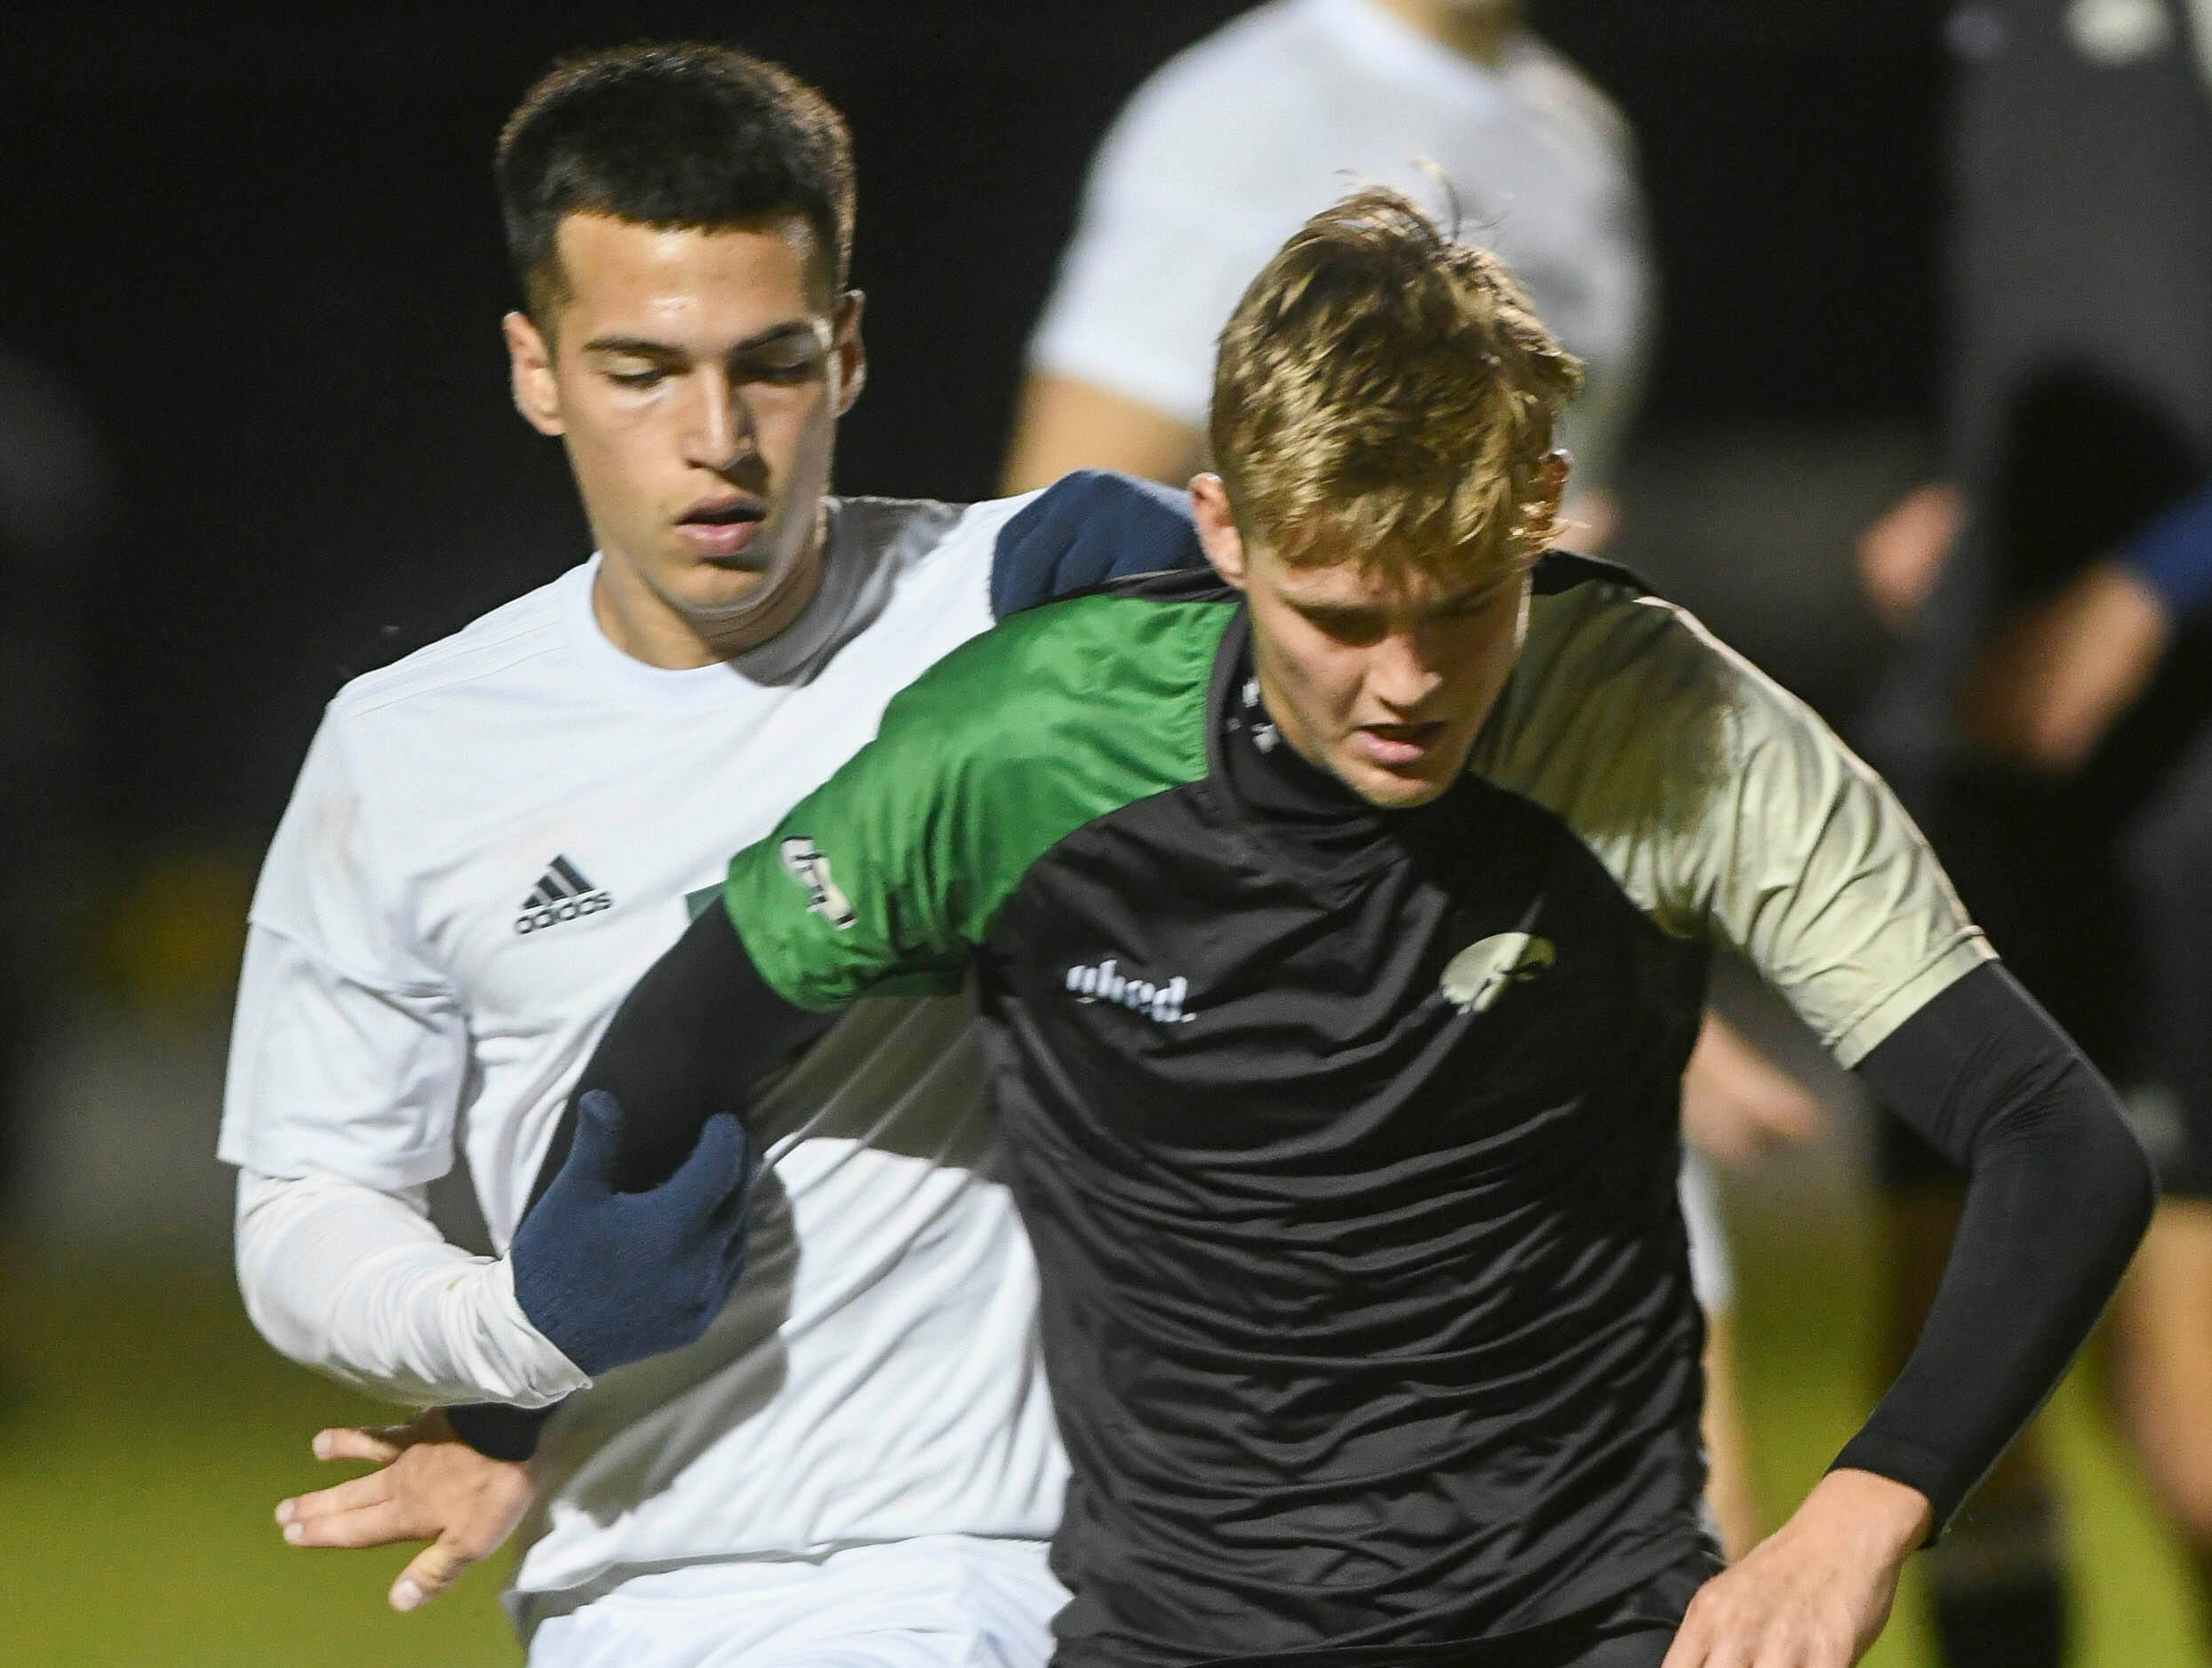 Ben Pena of Melbourne Central Catholic and Mads Jensen of Viera battle for control of the ball during Friday's game in Viera